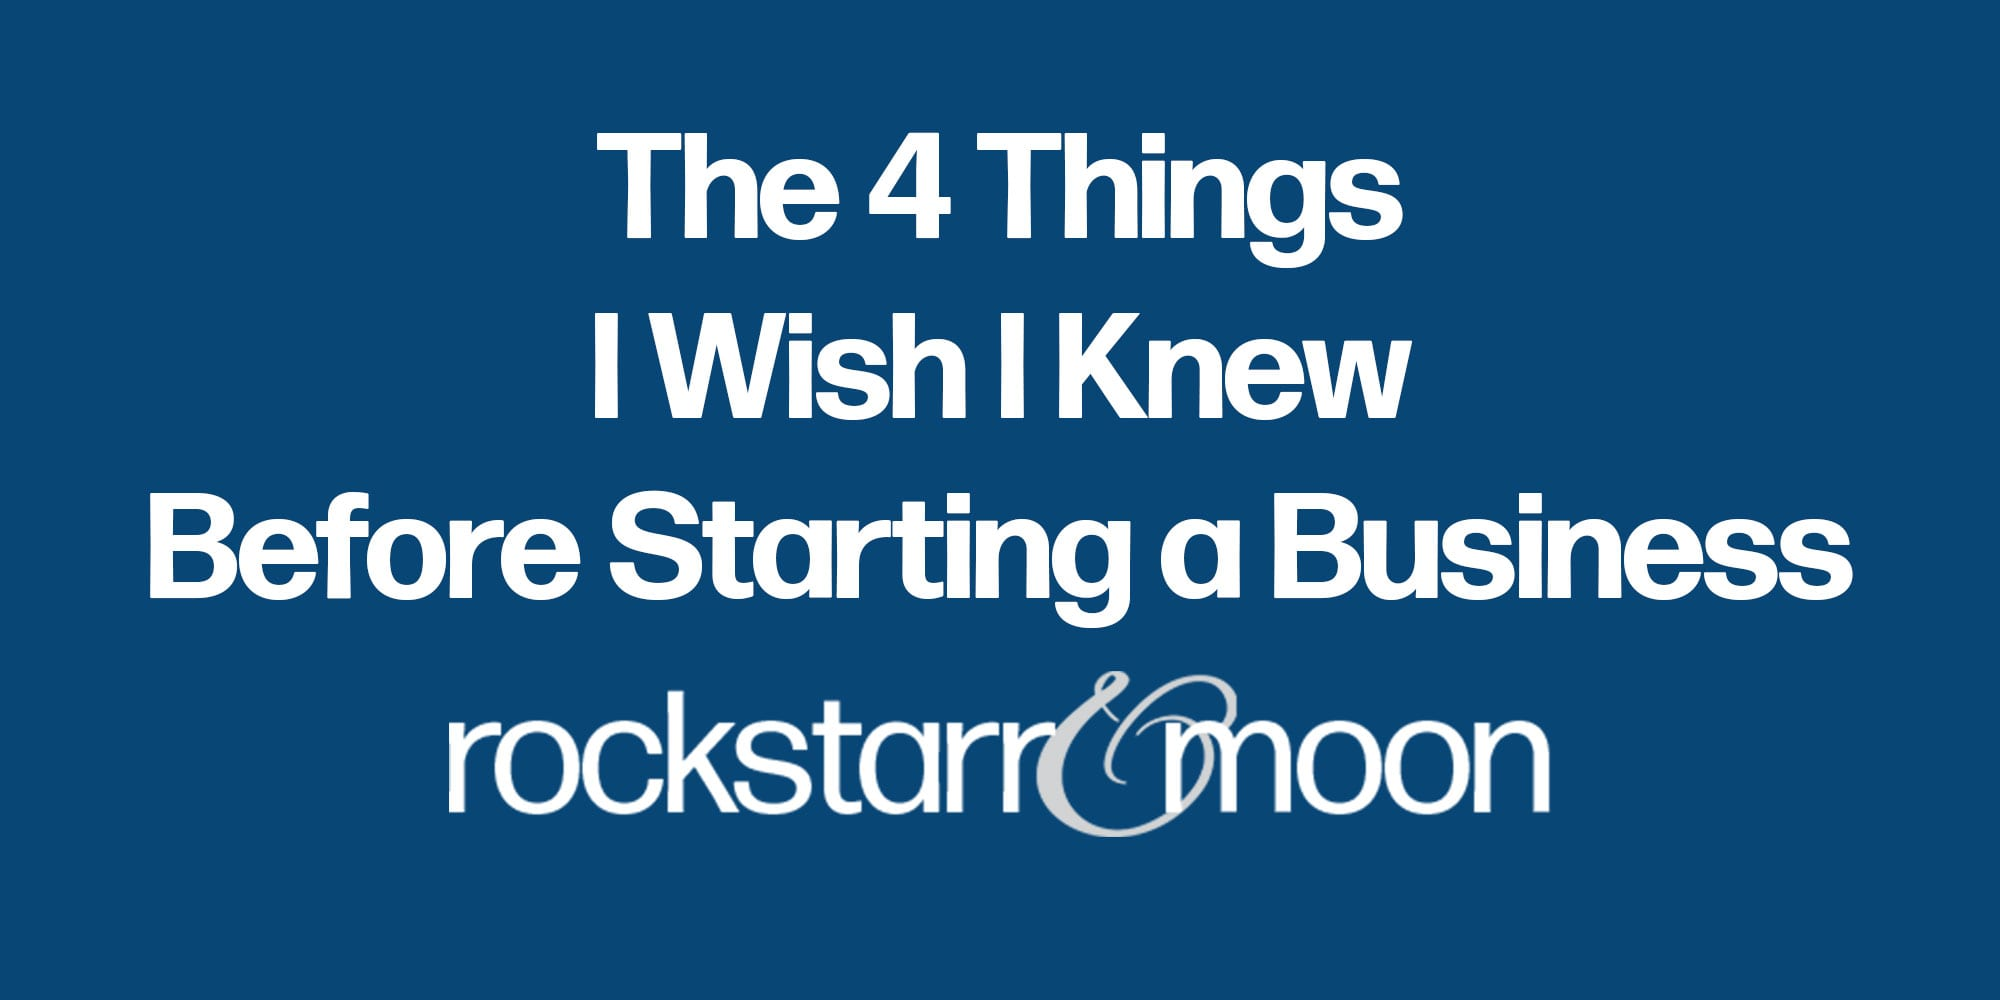 The 4 Things I Wish I Knew Before Starting a Business